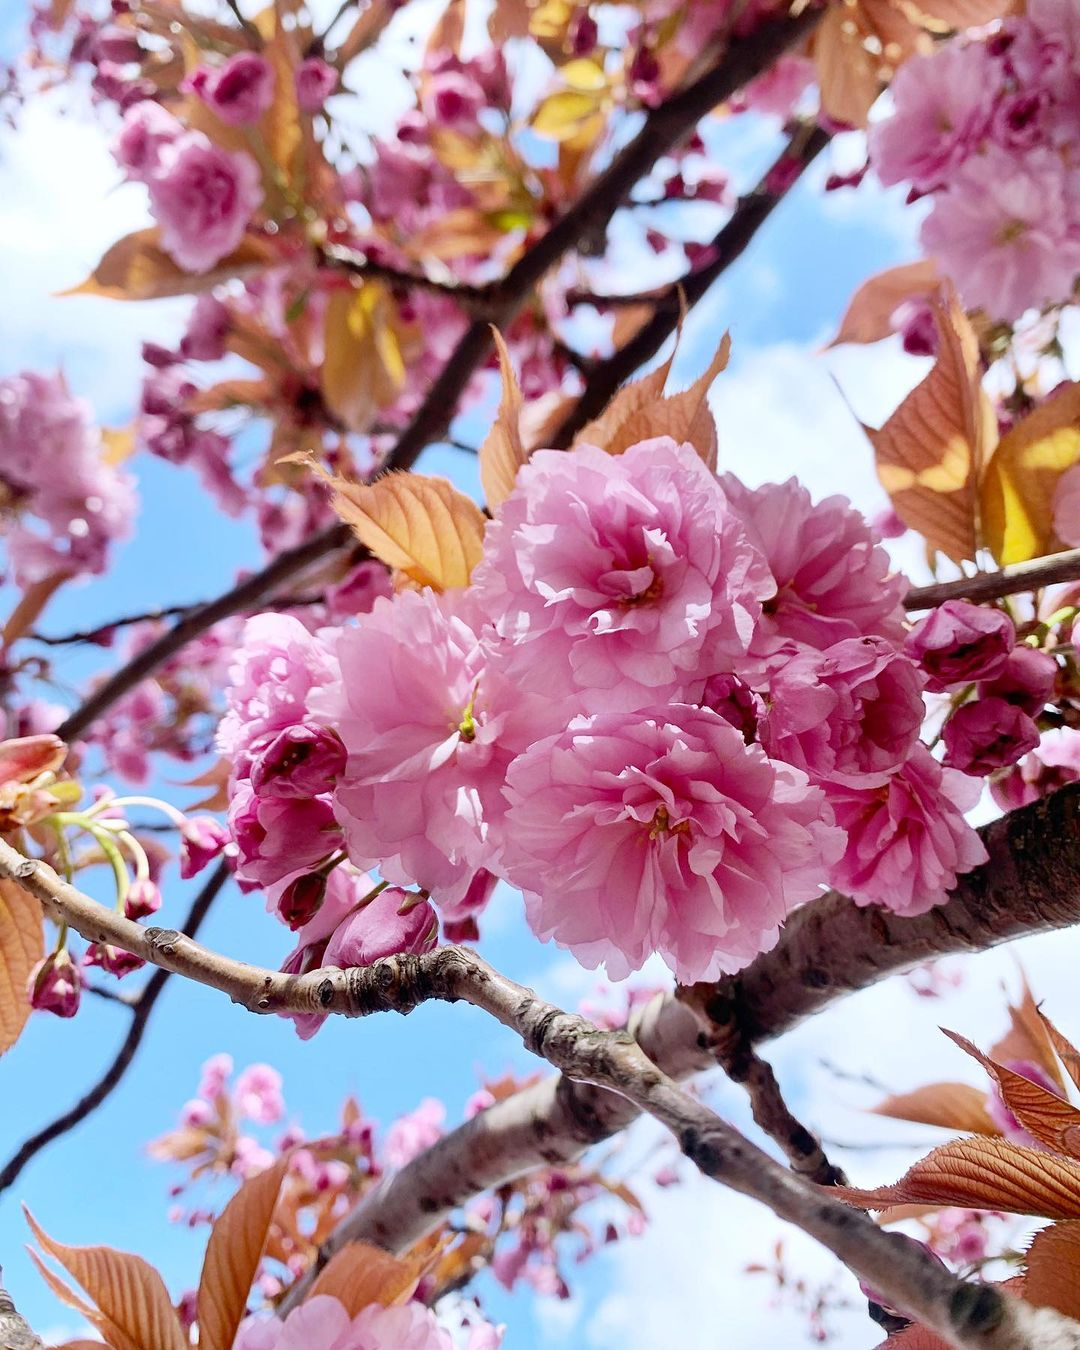 Pink cherry blossom tree in spring - London lifestyle blog